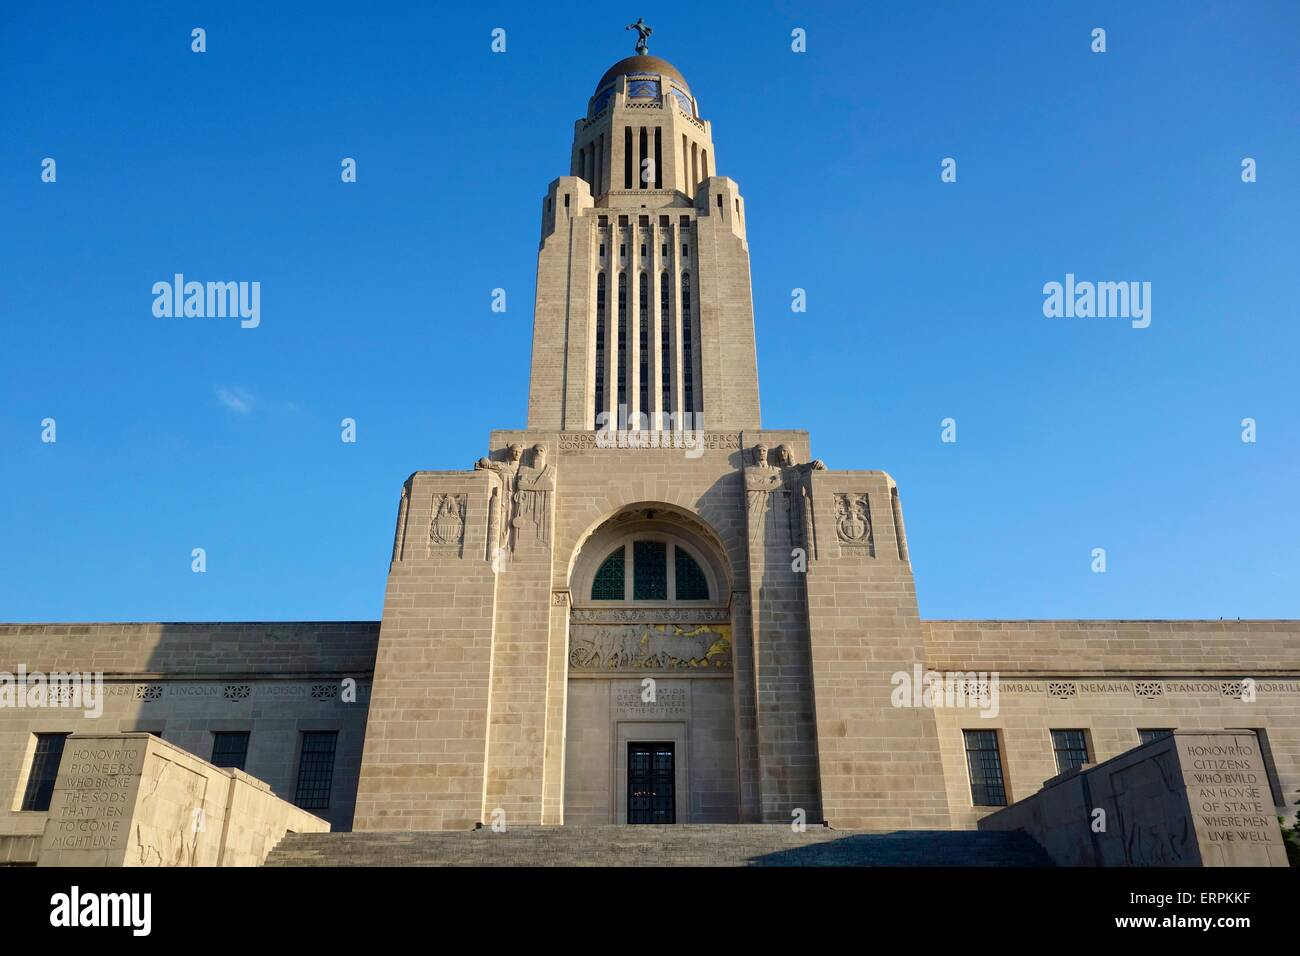 Nebraska State Capitol Building, Lincoln, Nebraska. Stock Photo